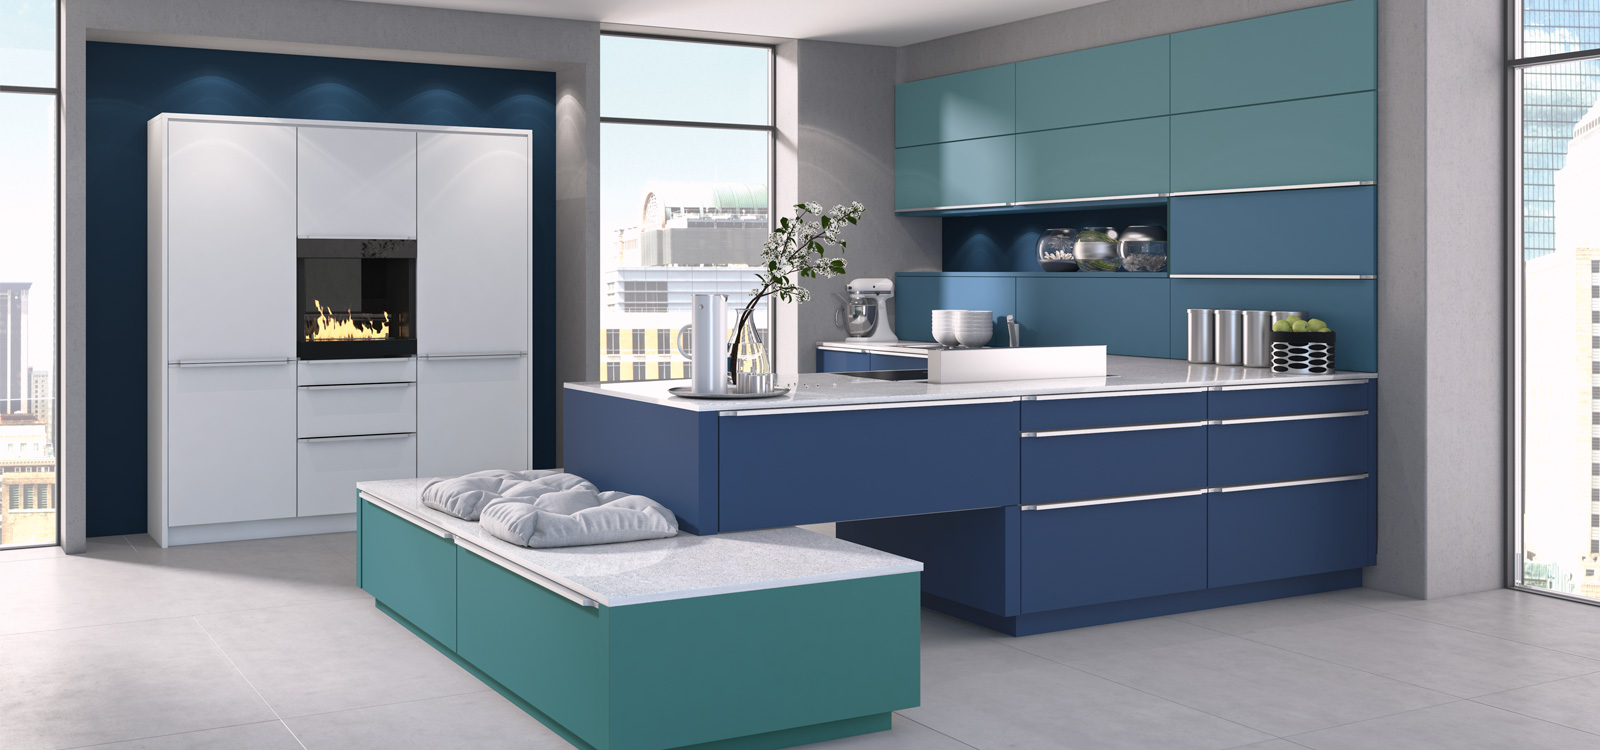 kreatis conception pose cuisine bain dressing m con. Black Bedroom Furniture Sets. Home Design Ideas